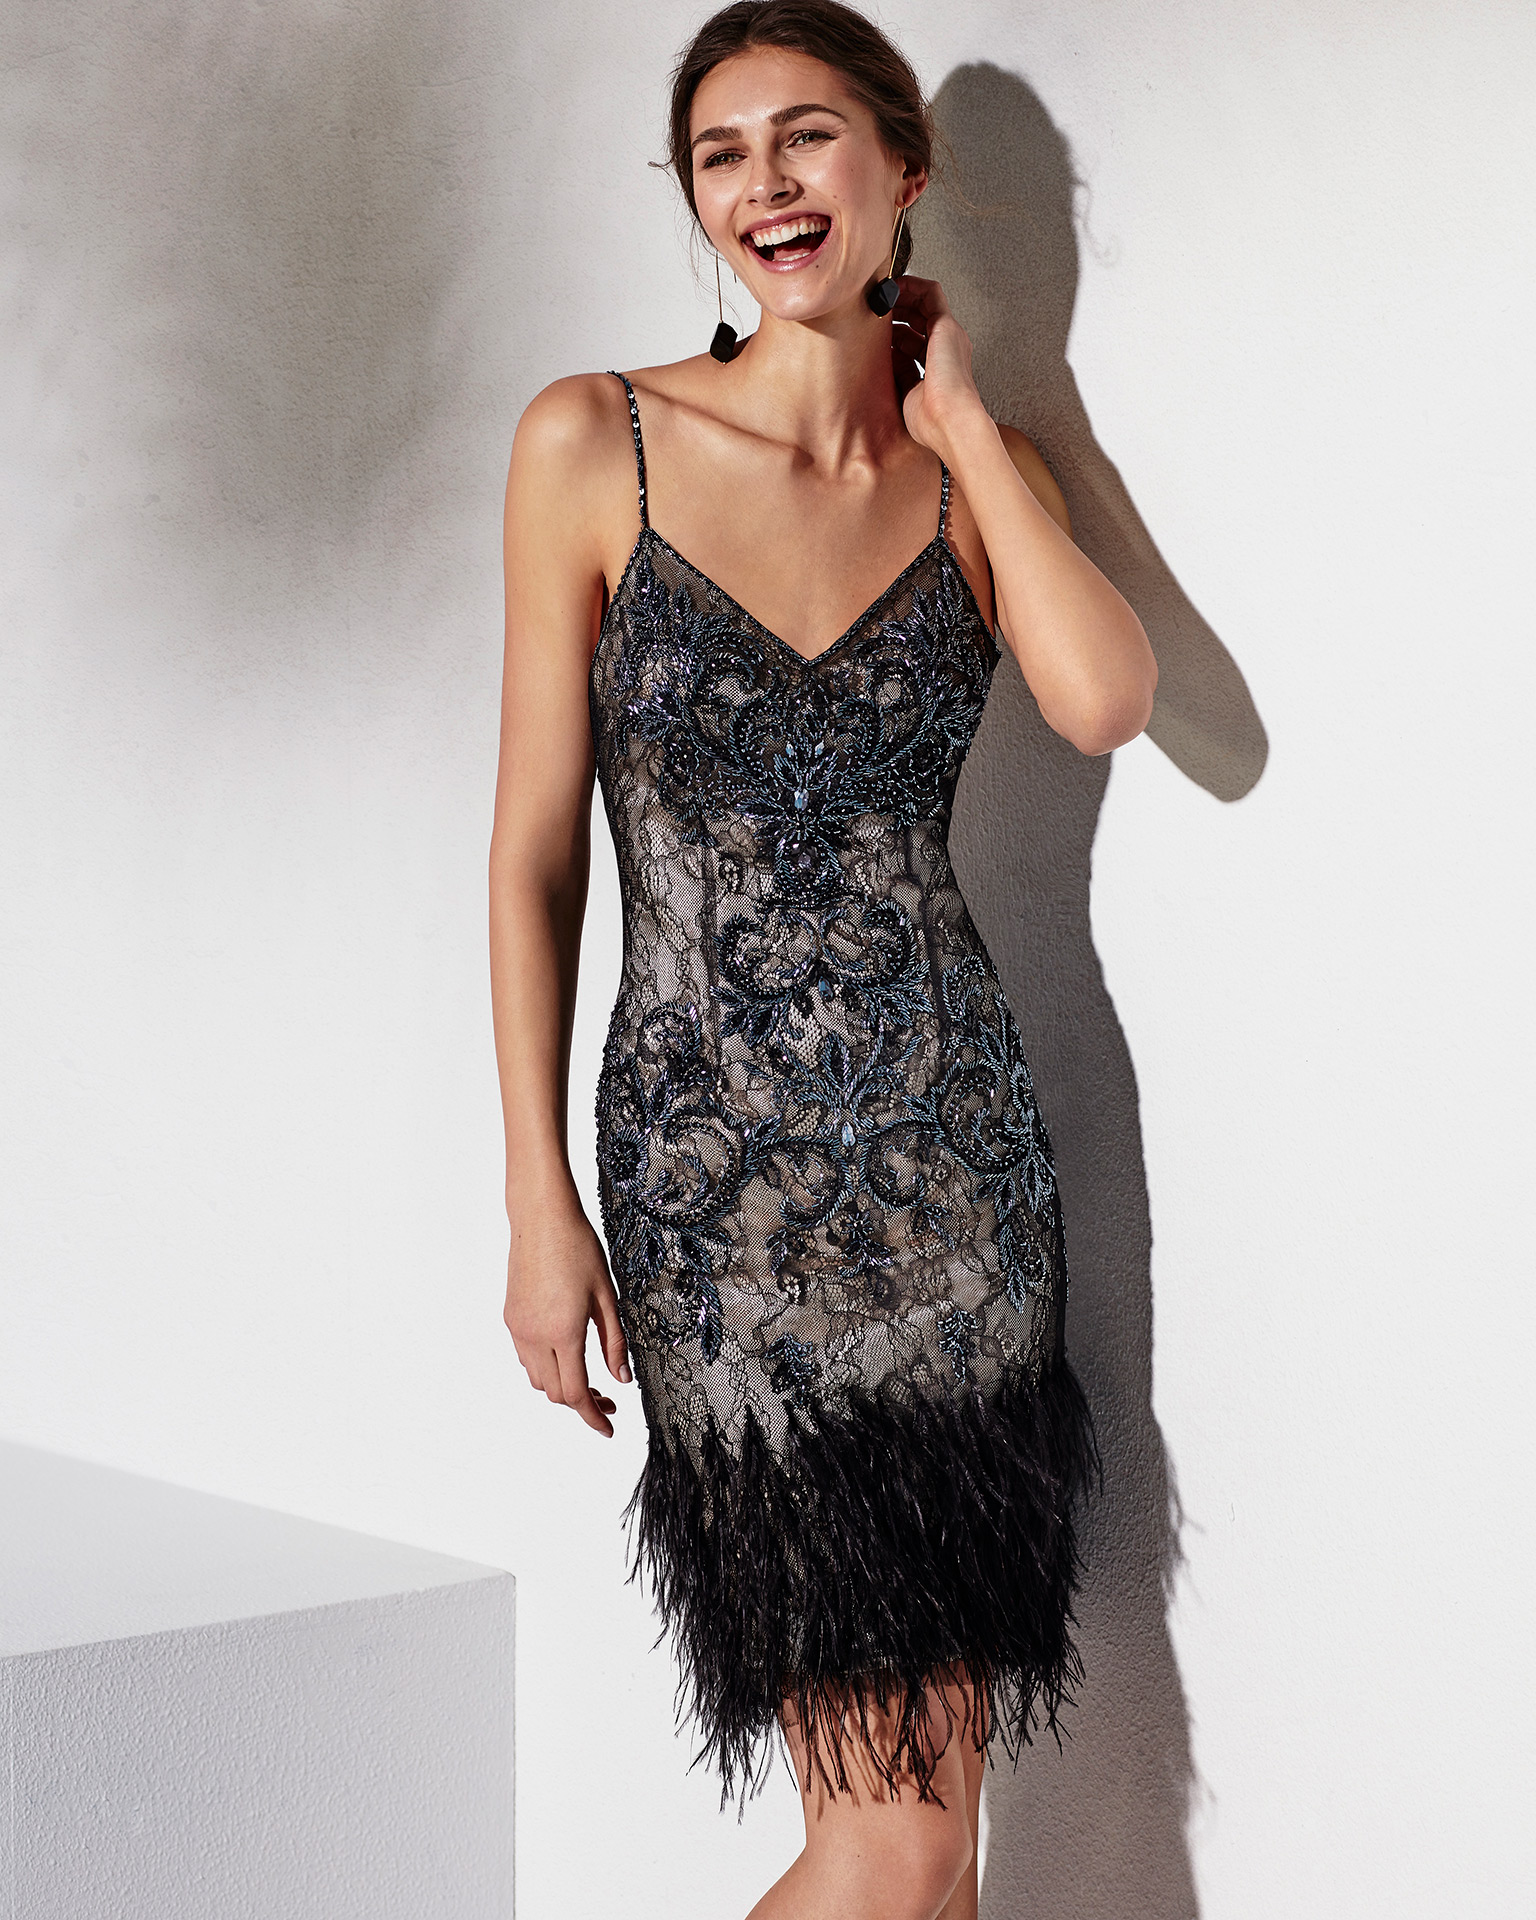 Short beaded lace cocktail dress with shawl, V-neckline and shoulder straps. Available in black/nude, black/red and cobalt/pink. 2018 MARFIL BARCELONA Collection.